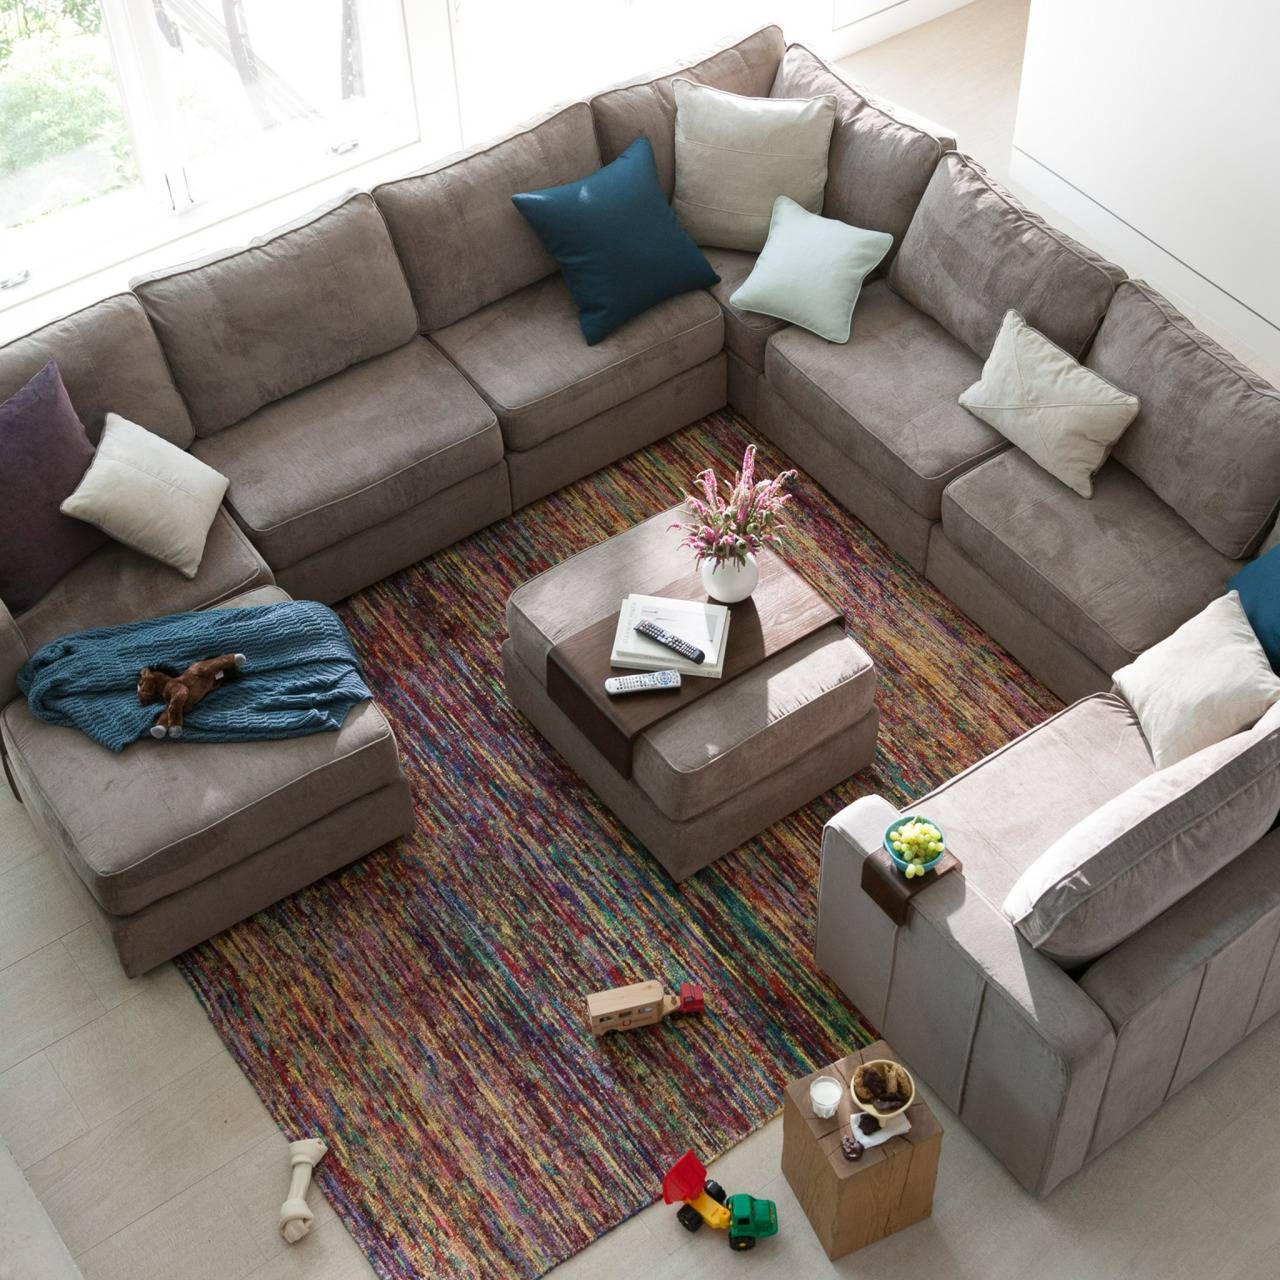 Lovesac — We Make Sactionals, The Most Adaptable Couch In The within Love Sac Sofas (Image 8 of 15)